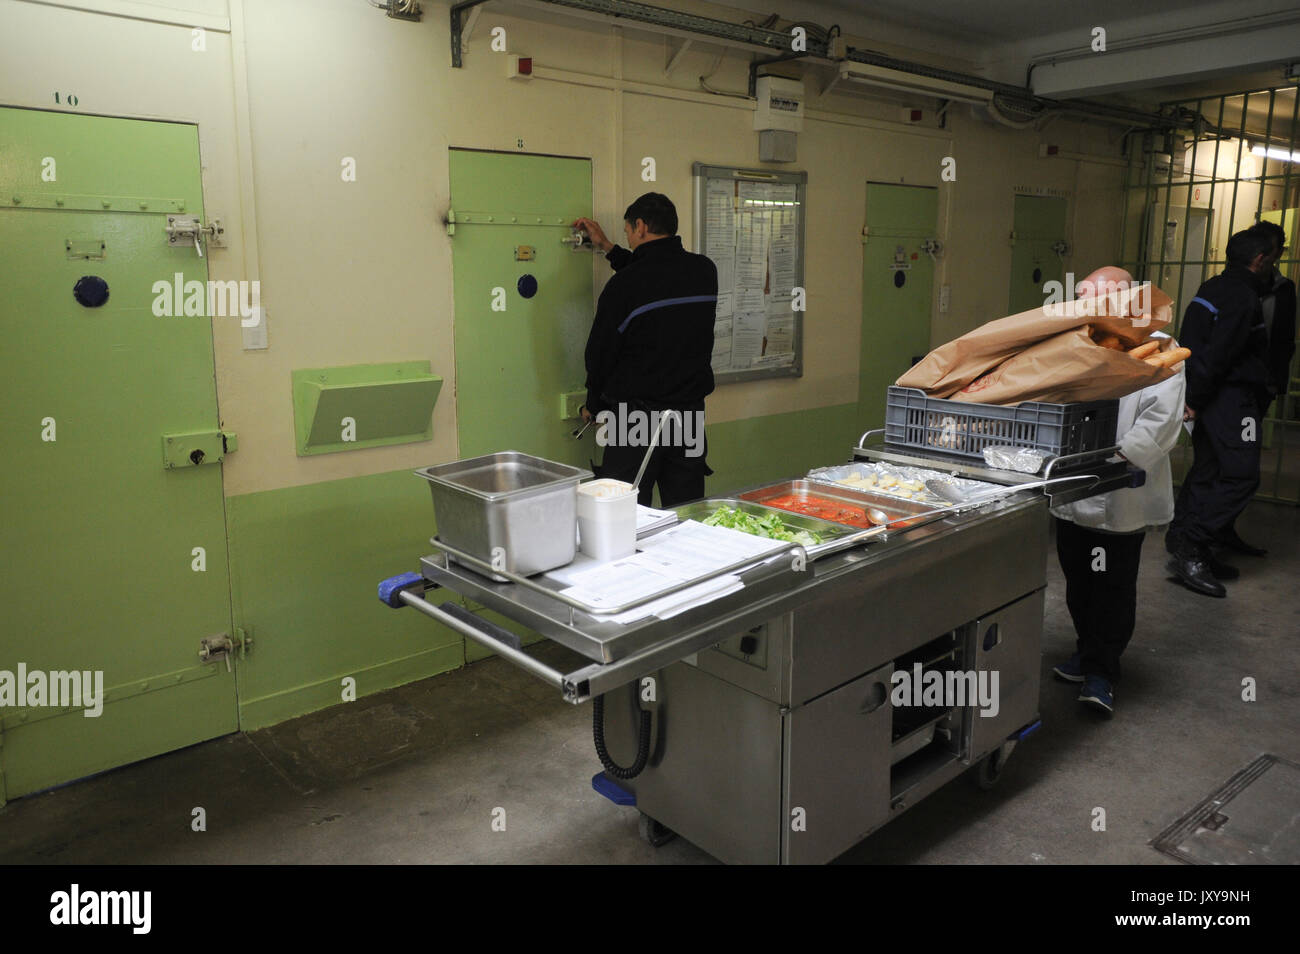 Saint-Martin-de-Re on 2015/10/02: distribution of meal in the prison of Saint-Martin-de-Re. Prisoner beside a prison warden in front of a cell - Stock Image